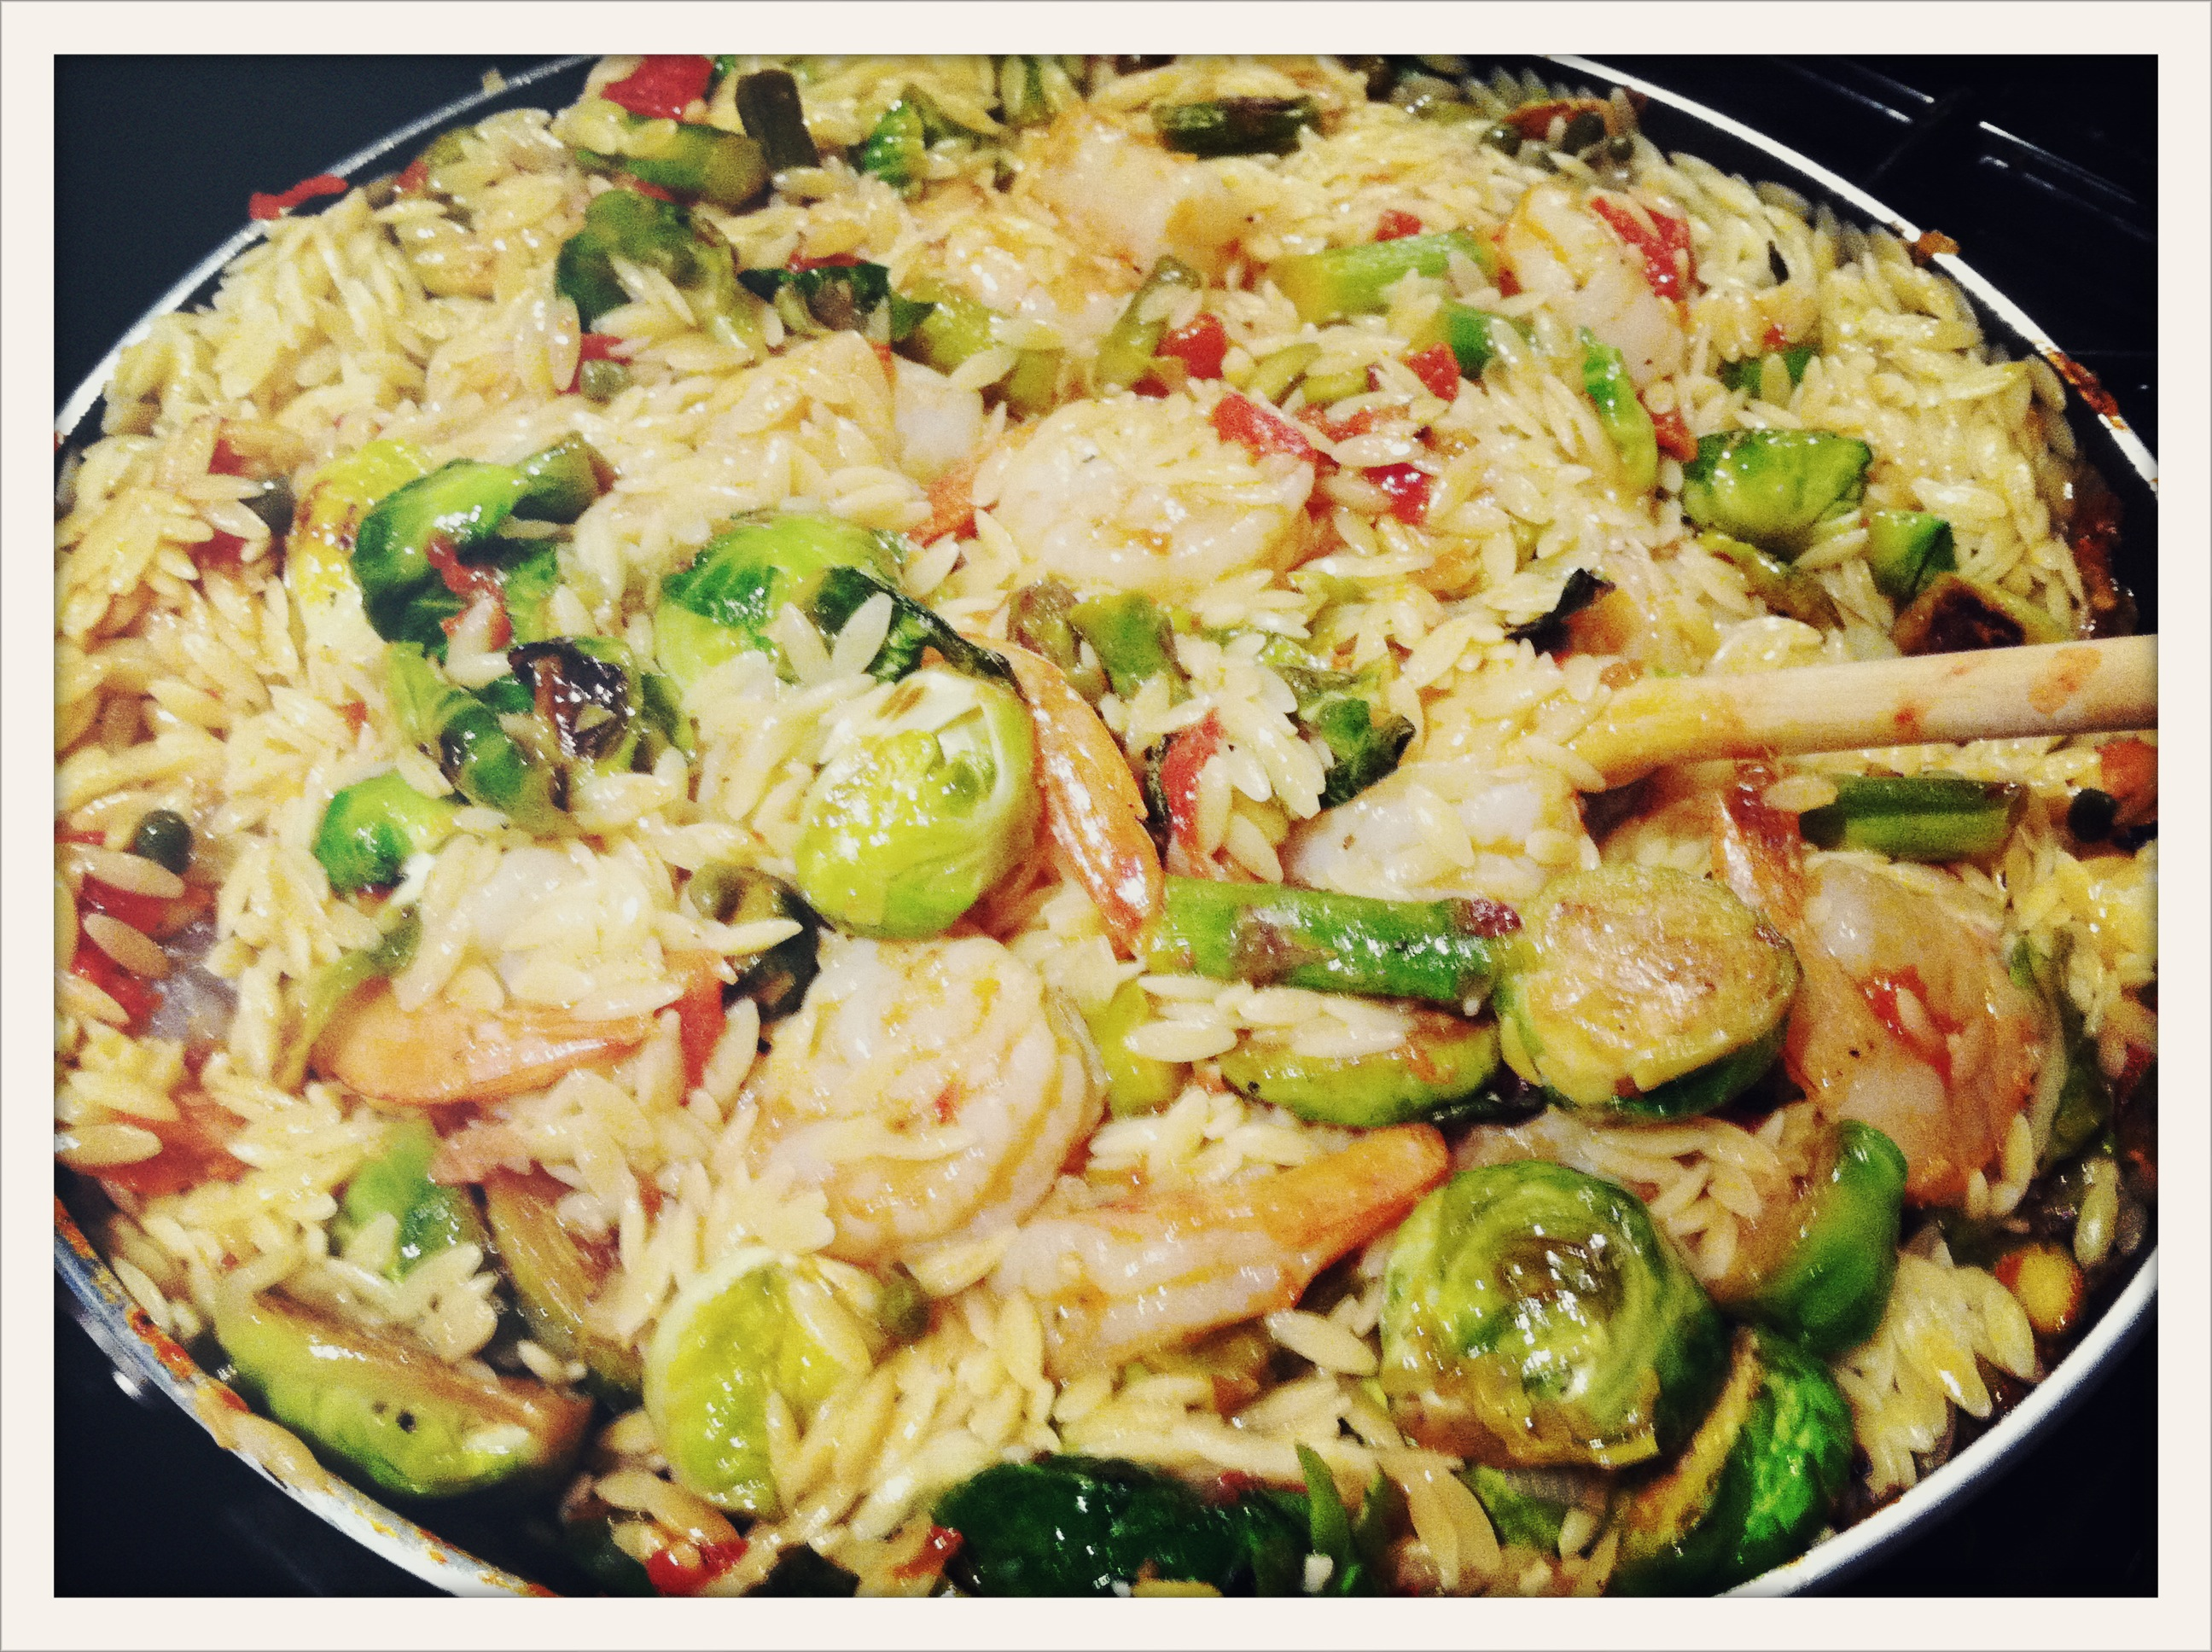 Lemon Orzo Pasta with Brussels Sprouts and Shrimp